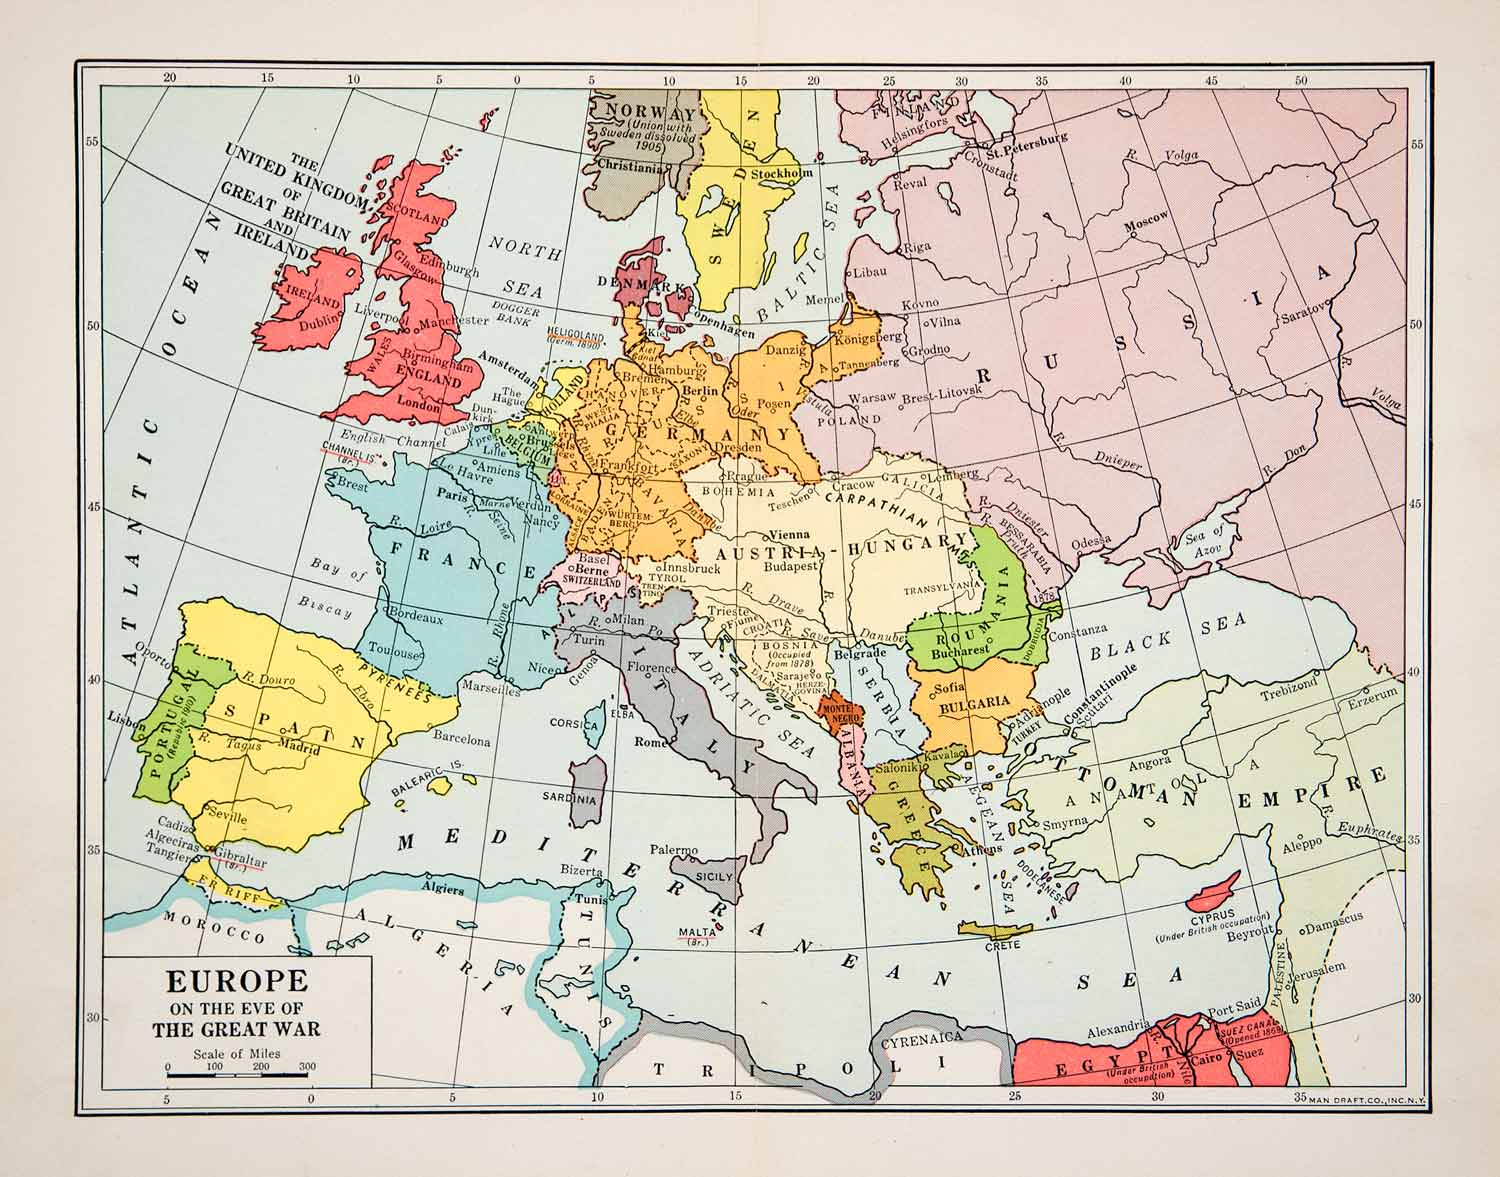 a description of the great war dragged on in europe throughout Ww1 - unit 4 (chapter 14 militarism also built up the tension and fear among the great powers of europe the alliance system dragged all of europe into that.